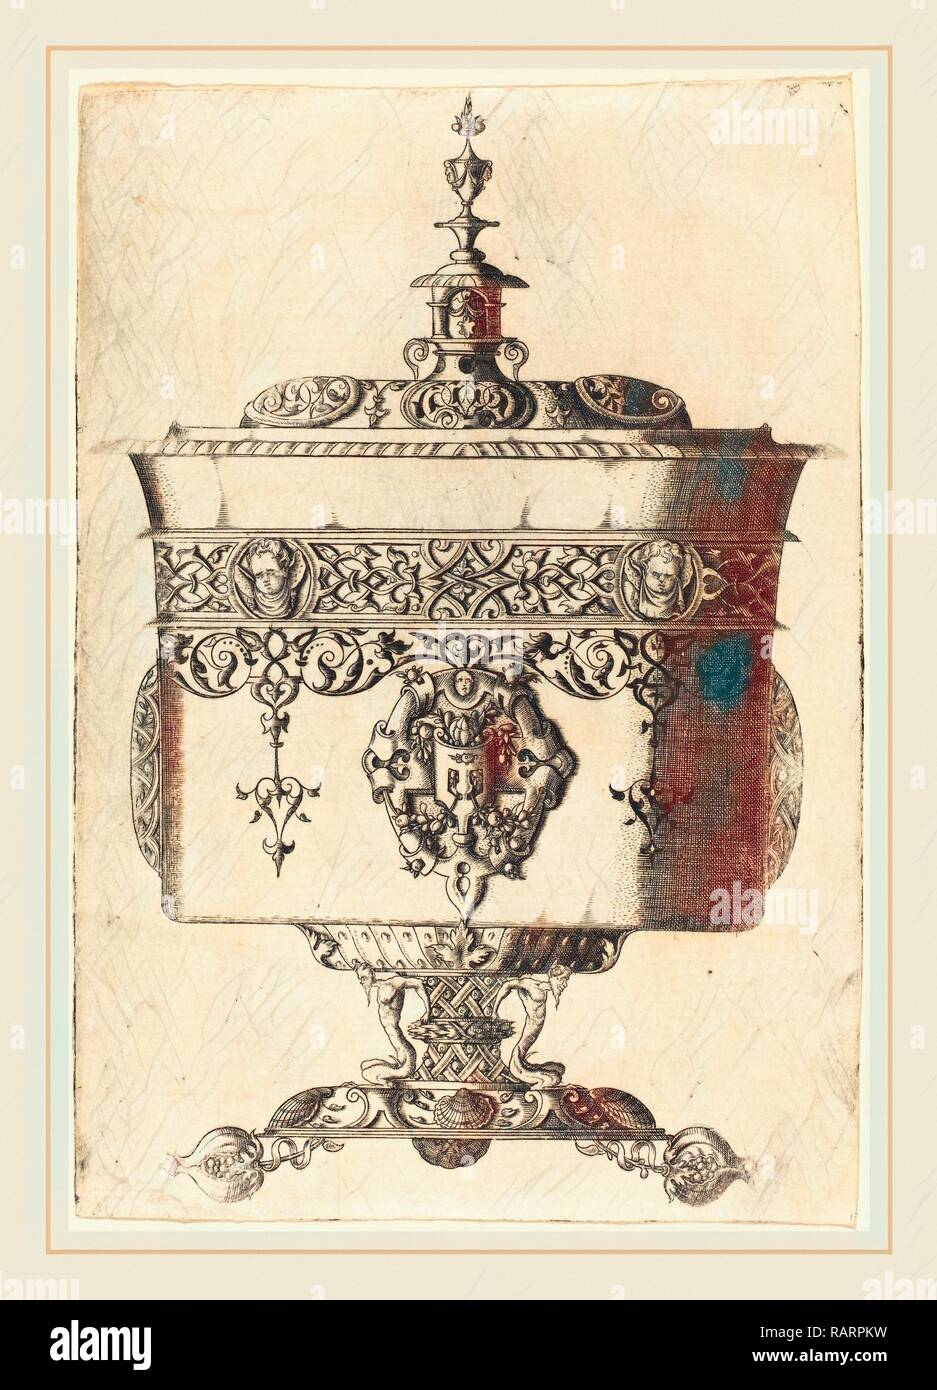 Mathis Zundt (German, probably 1498-1572), Richly Embellished Goblet, etching. Reimagined by Gibon. Classic art with reimagined - Stock Image